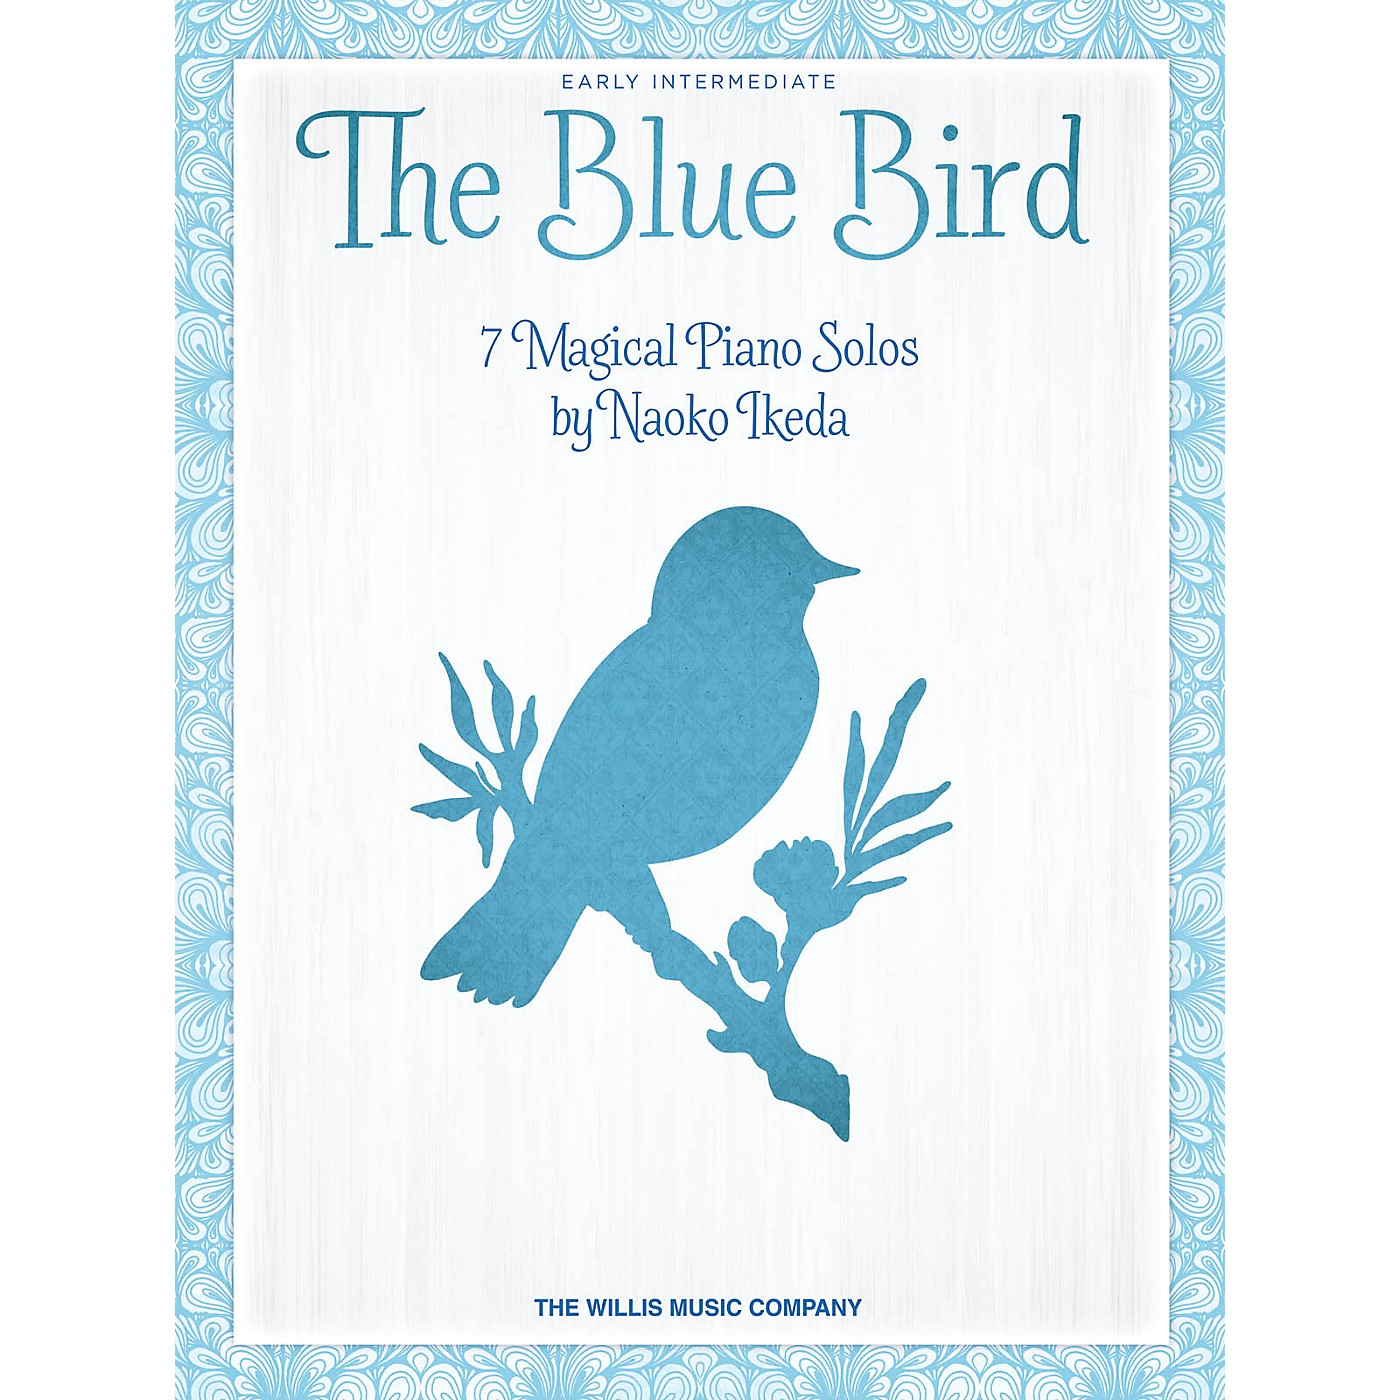 Willis Music The Blue Bird (7 Magical Piano Solos) by Naoko Ikeda for Early Intermediate Level Piano thumbnail